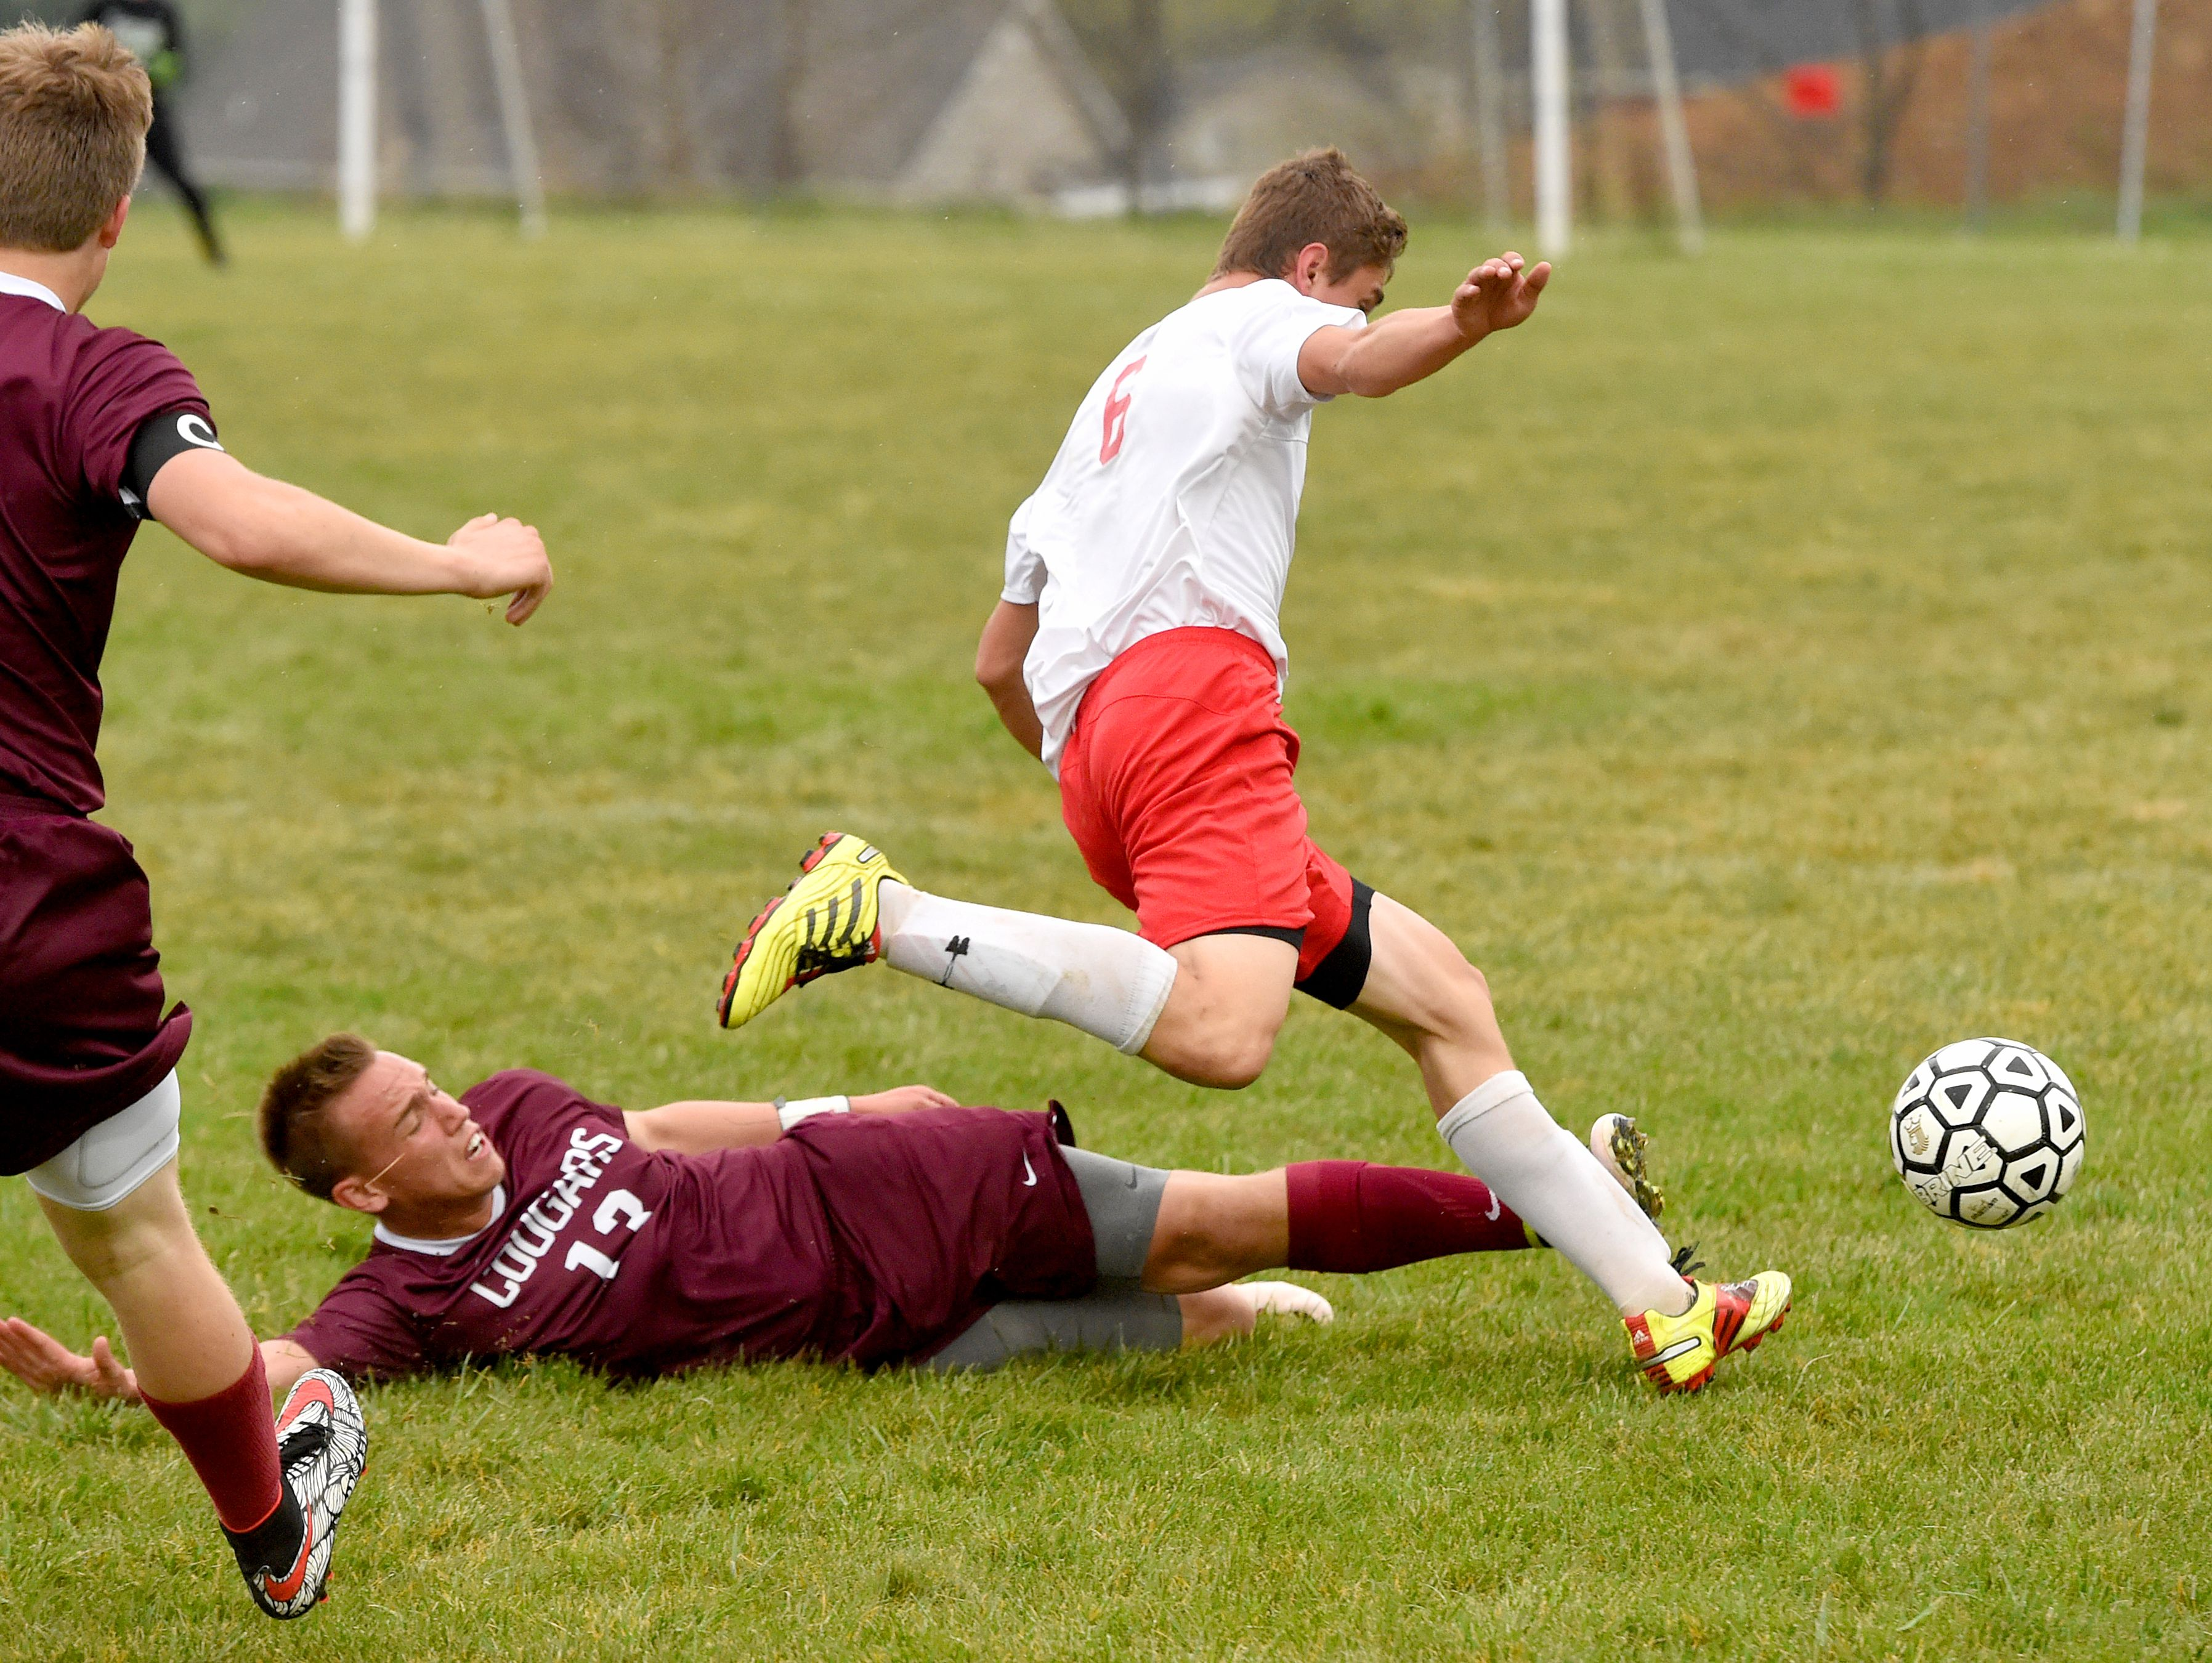 Riverheads' Jason Burch moves to kick the ball as he slips past Stuarts Draft's Joshua Huff who has gone down during a soccer game played in Greenville on Friday, April 22, 2016.